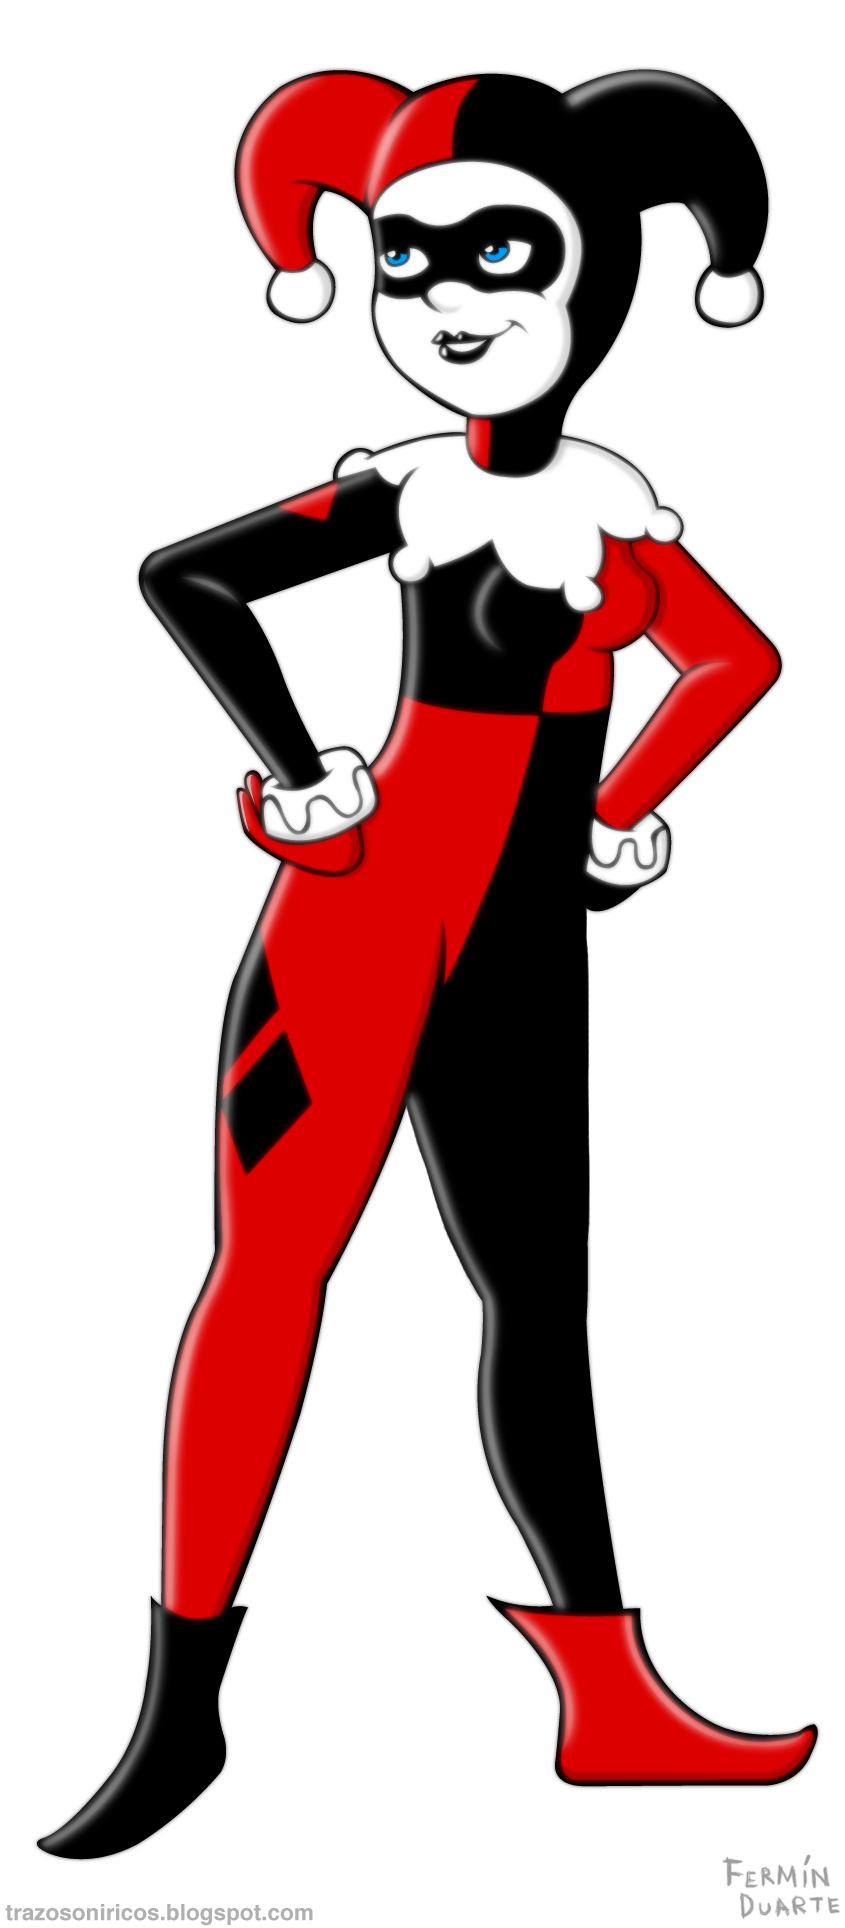 Harley quinn clipart hd royalty free download Harley Quinn by trazosoniricos on DeviantArt royalty free download